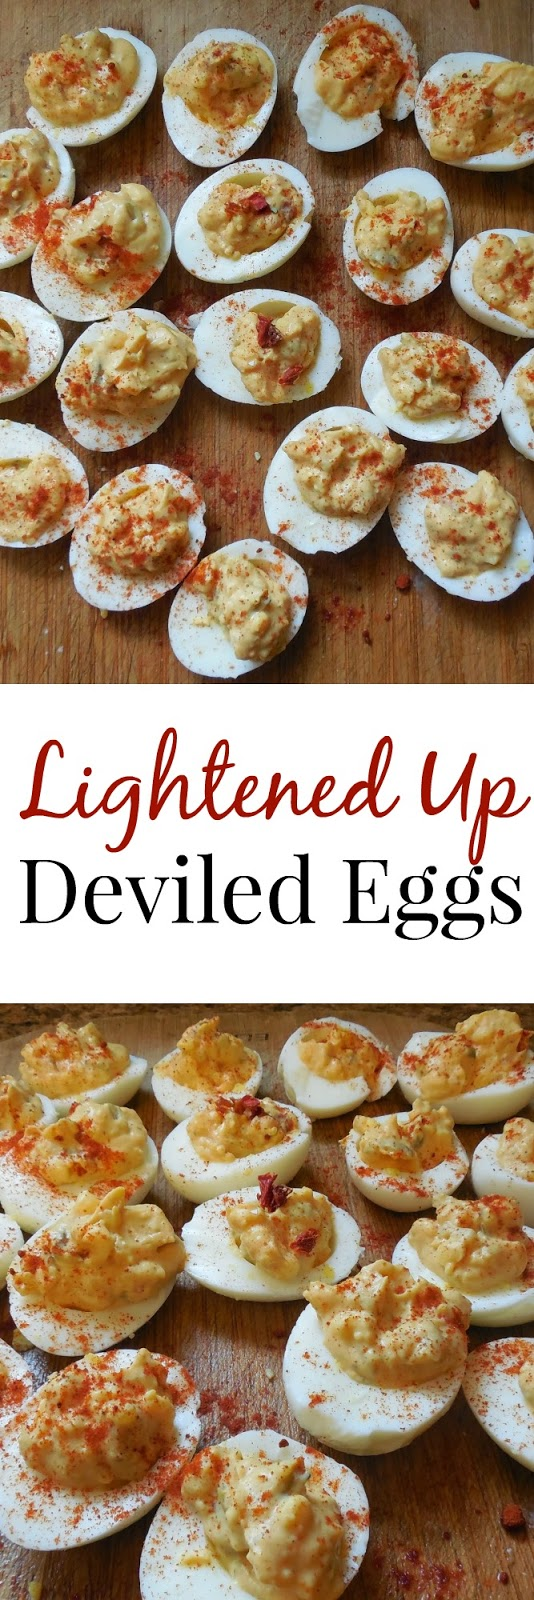 These lightened up deviled eggs are full of flavor with sun-dried tomatoes and are made healthier with less mayo! www.nutritionistreviews.com